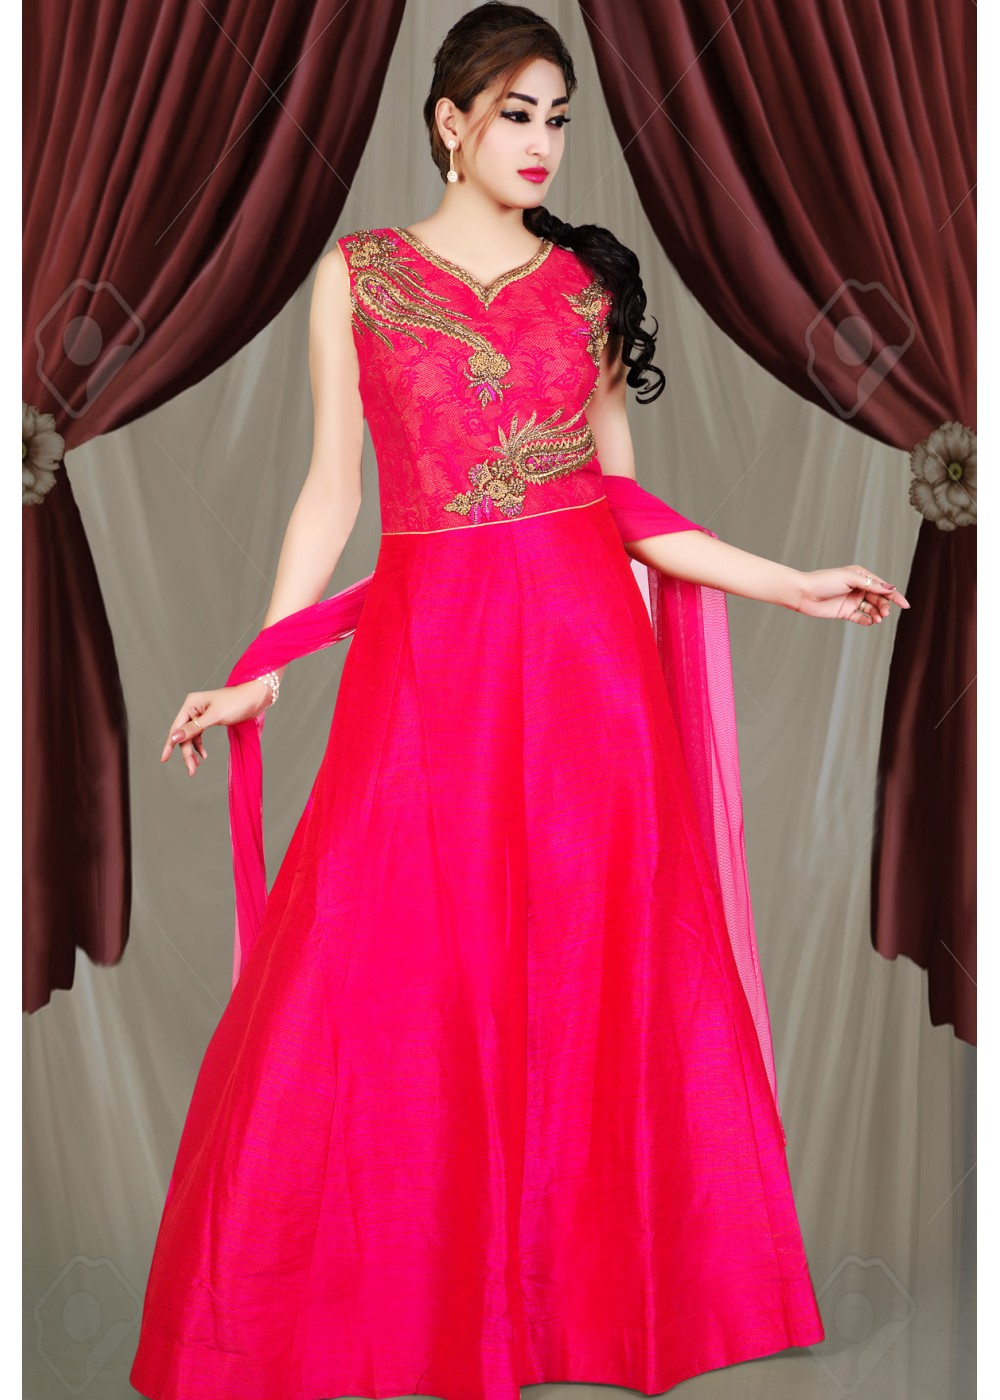 535b39714f PINK COLOR RAW SILK FABRIC DESIGNER GOWN. Image